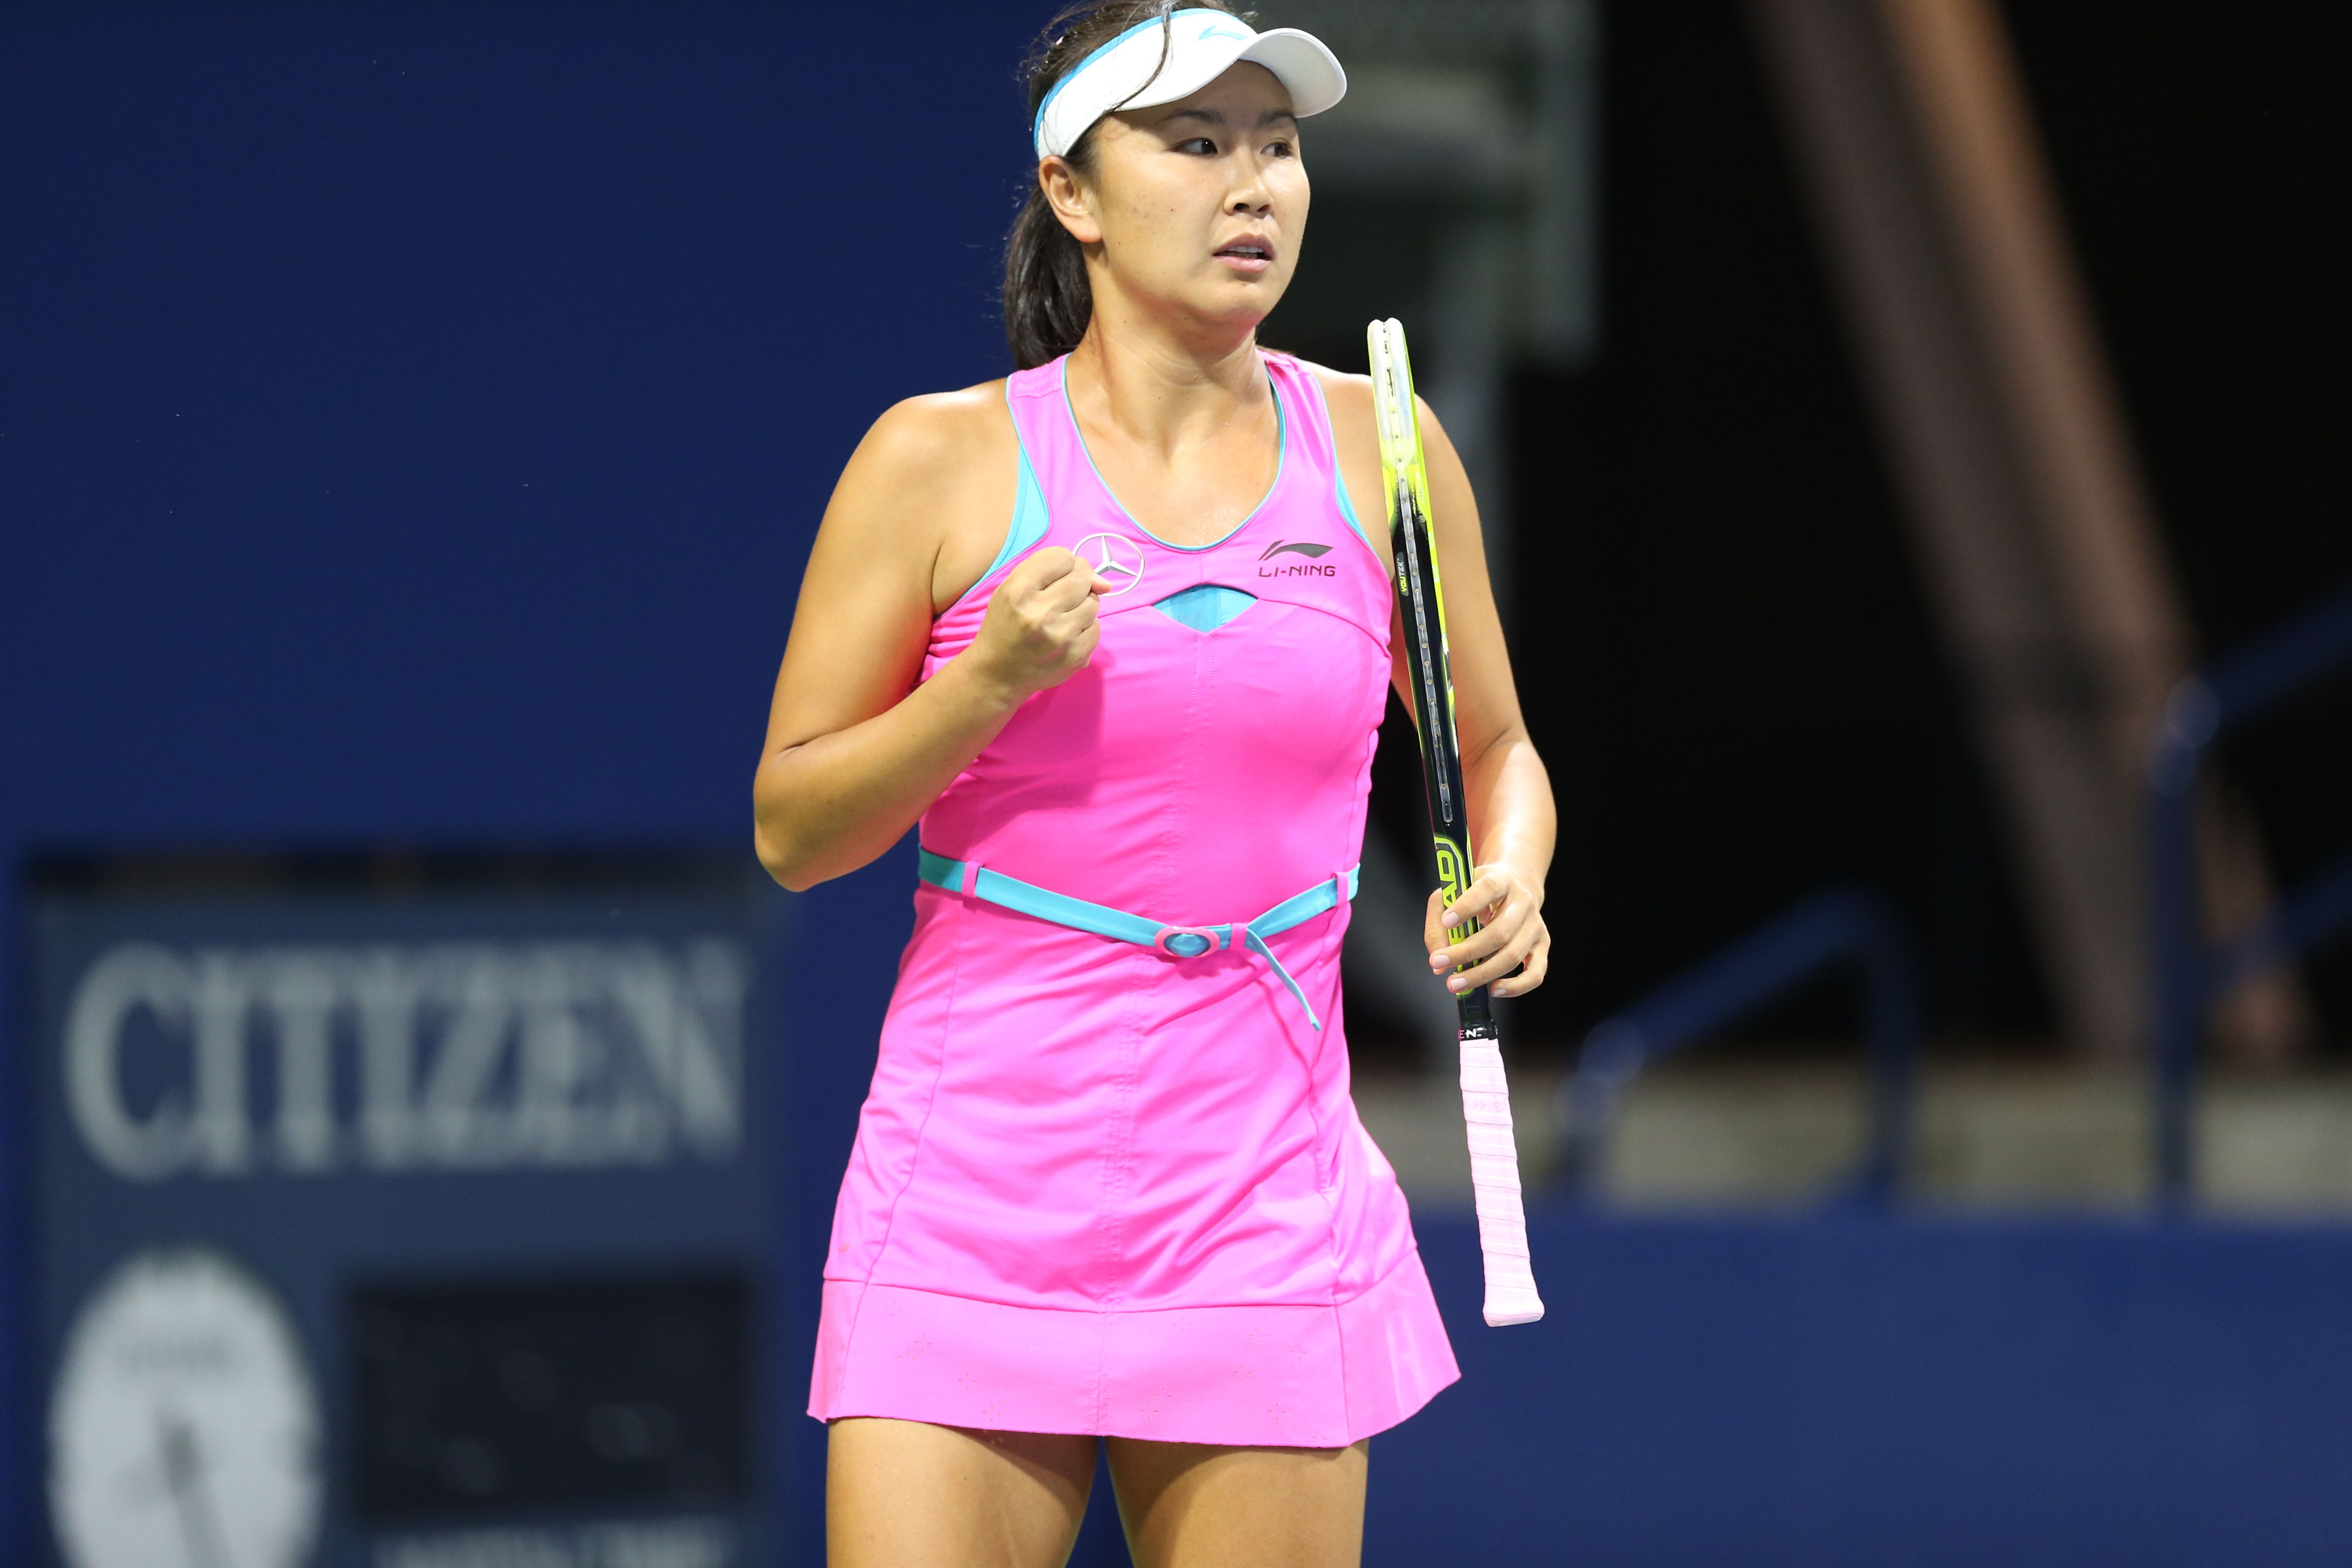 Chinese Player Peng Shuai Wears A Bright Pink Dress With Teal Details From Li Ning Bright Pink Dresses Tennis Events Tennis